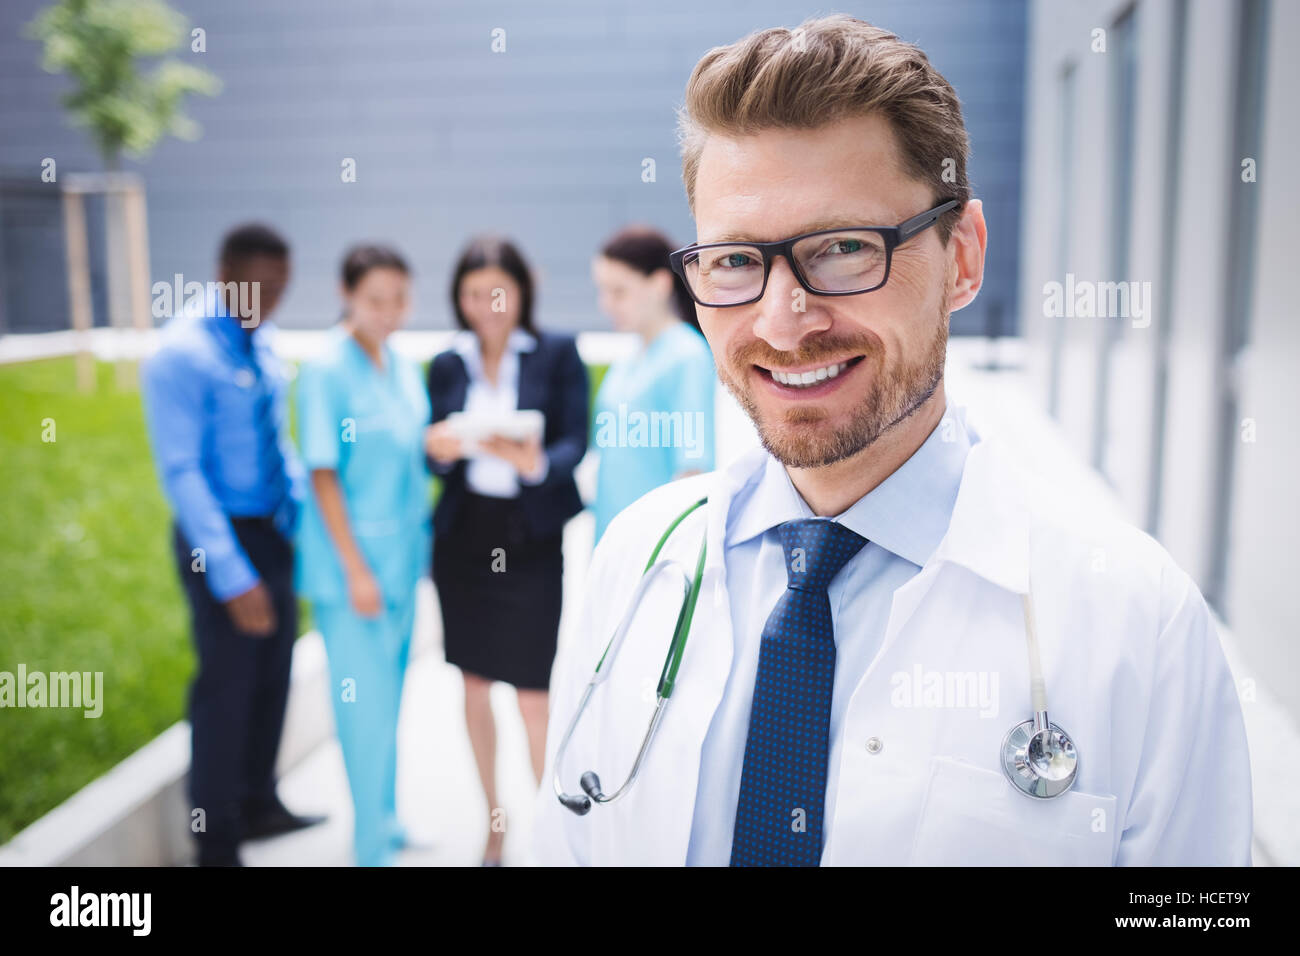 Doctor standing in hospital premises Stock Photo